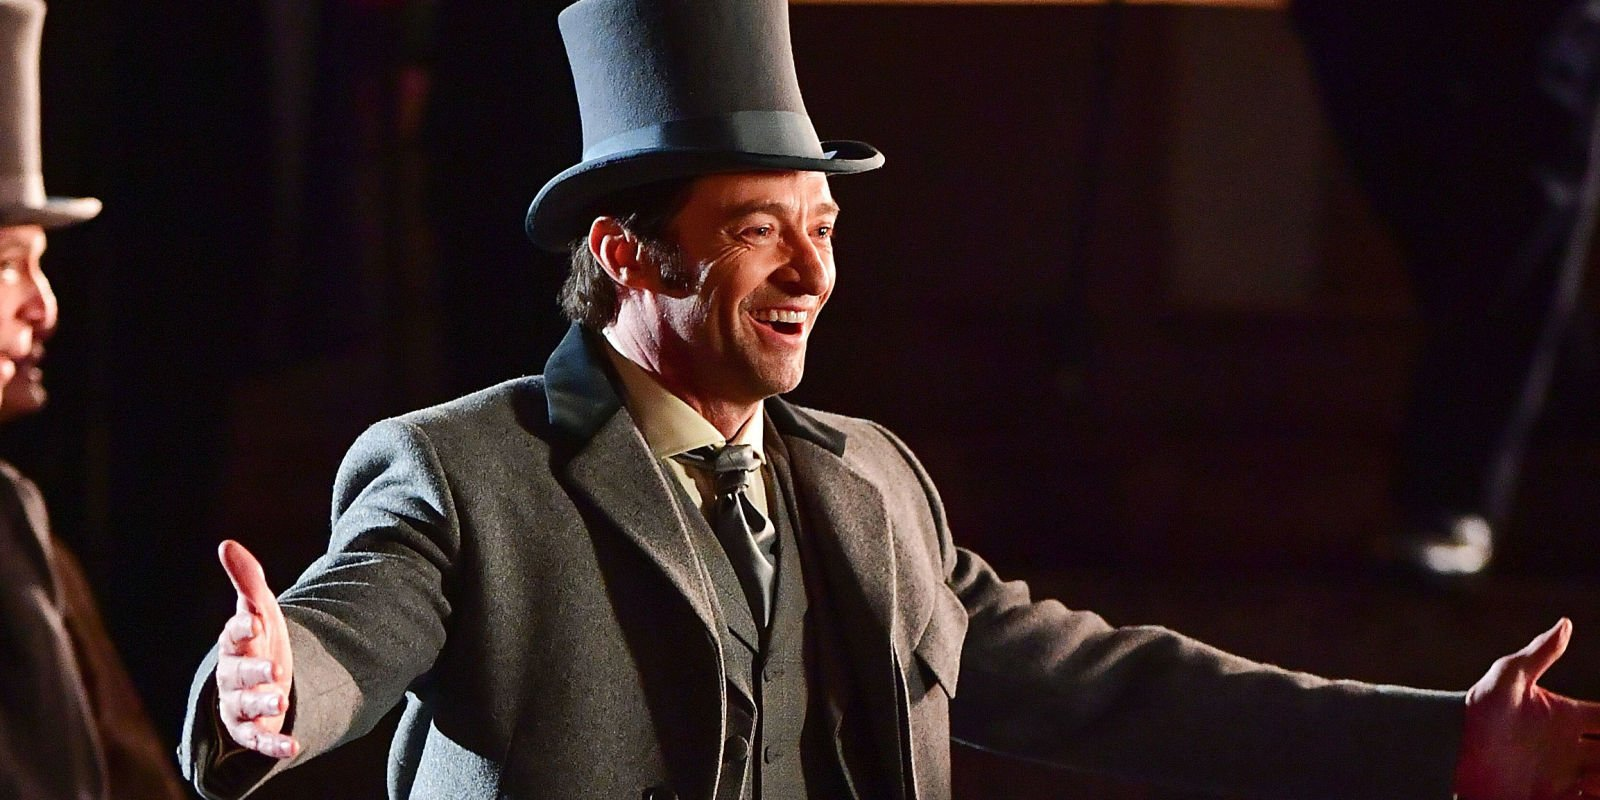 Hugh Jackman's The Greatest Showman has now grossed more than La La Land in the US